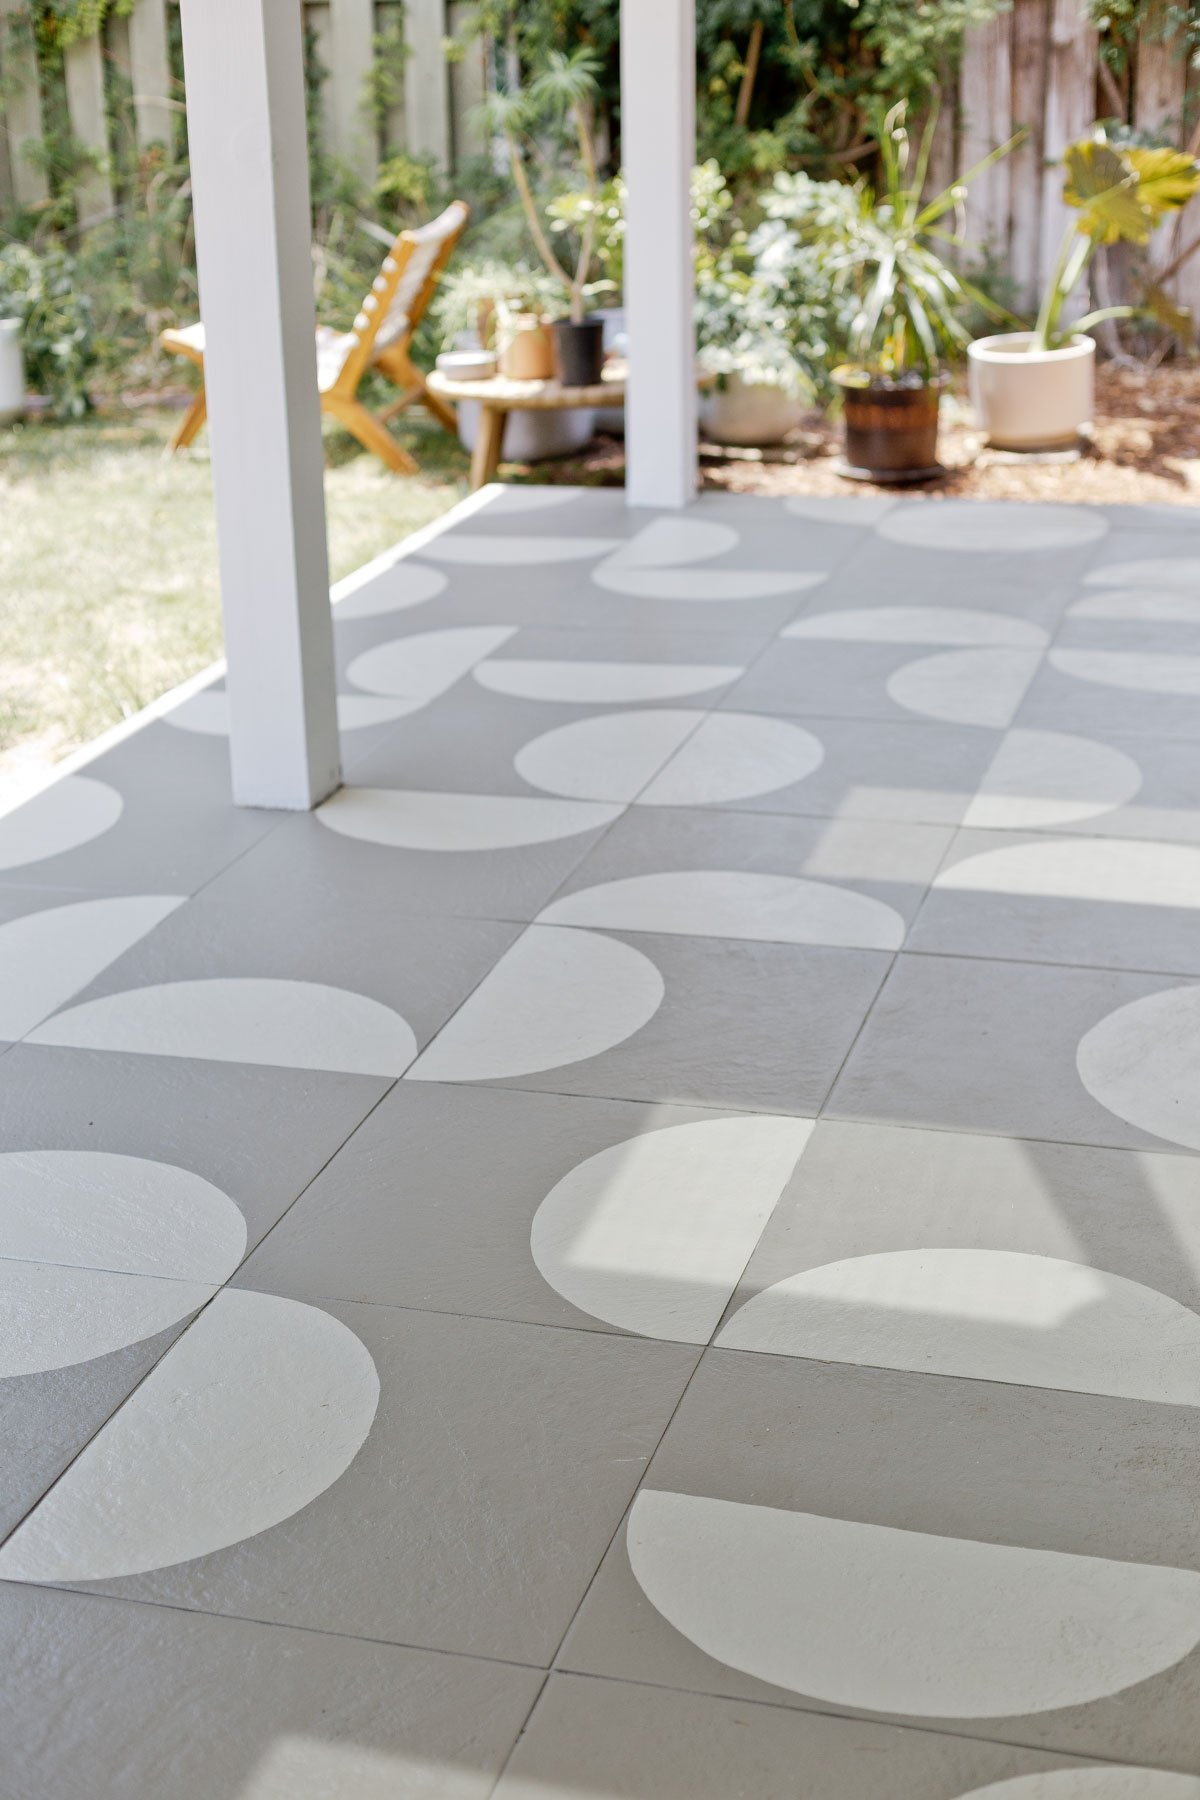 Painted and stenciled geometric pattern tiles in modern, grey and white pattern.